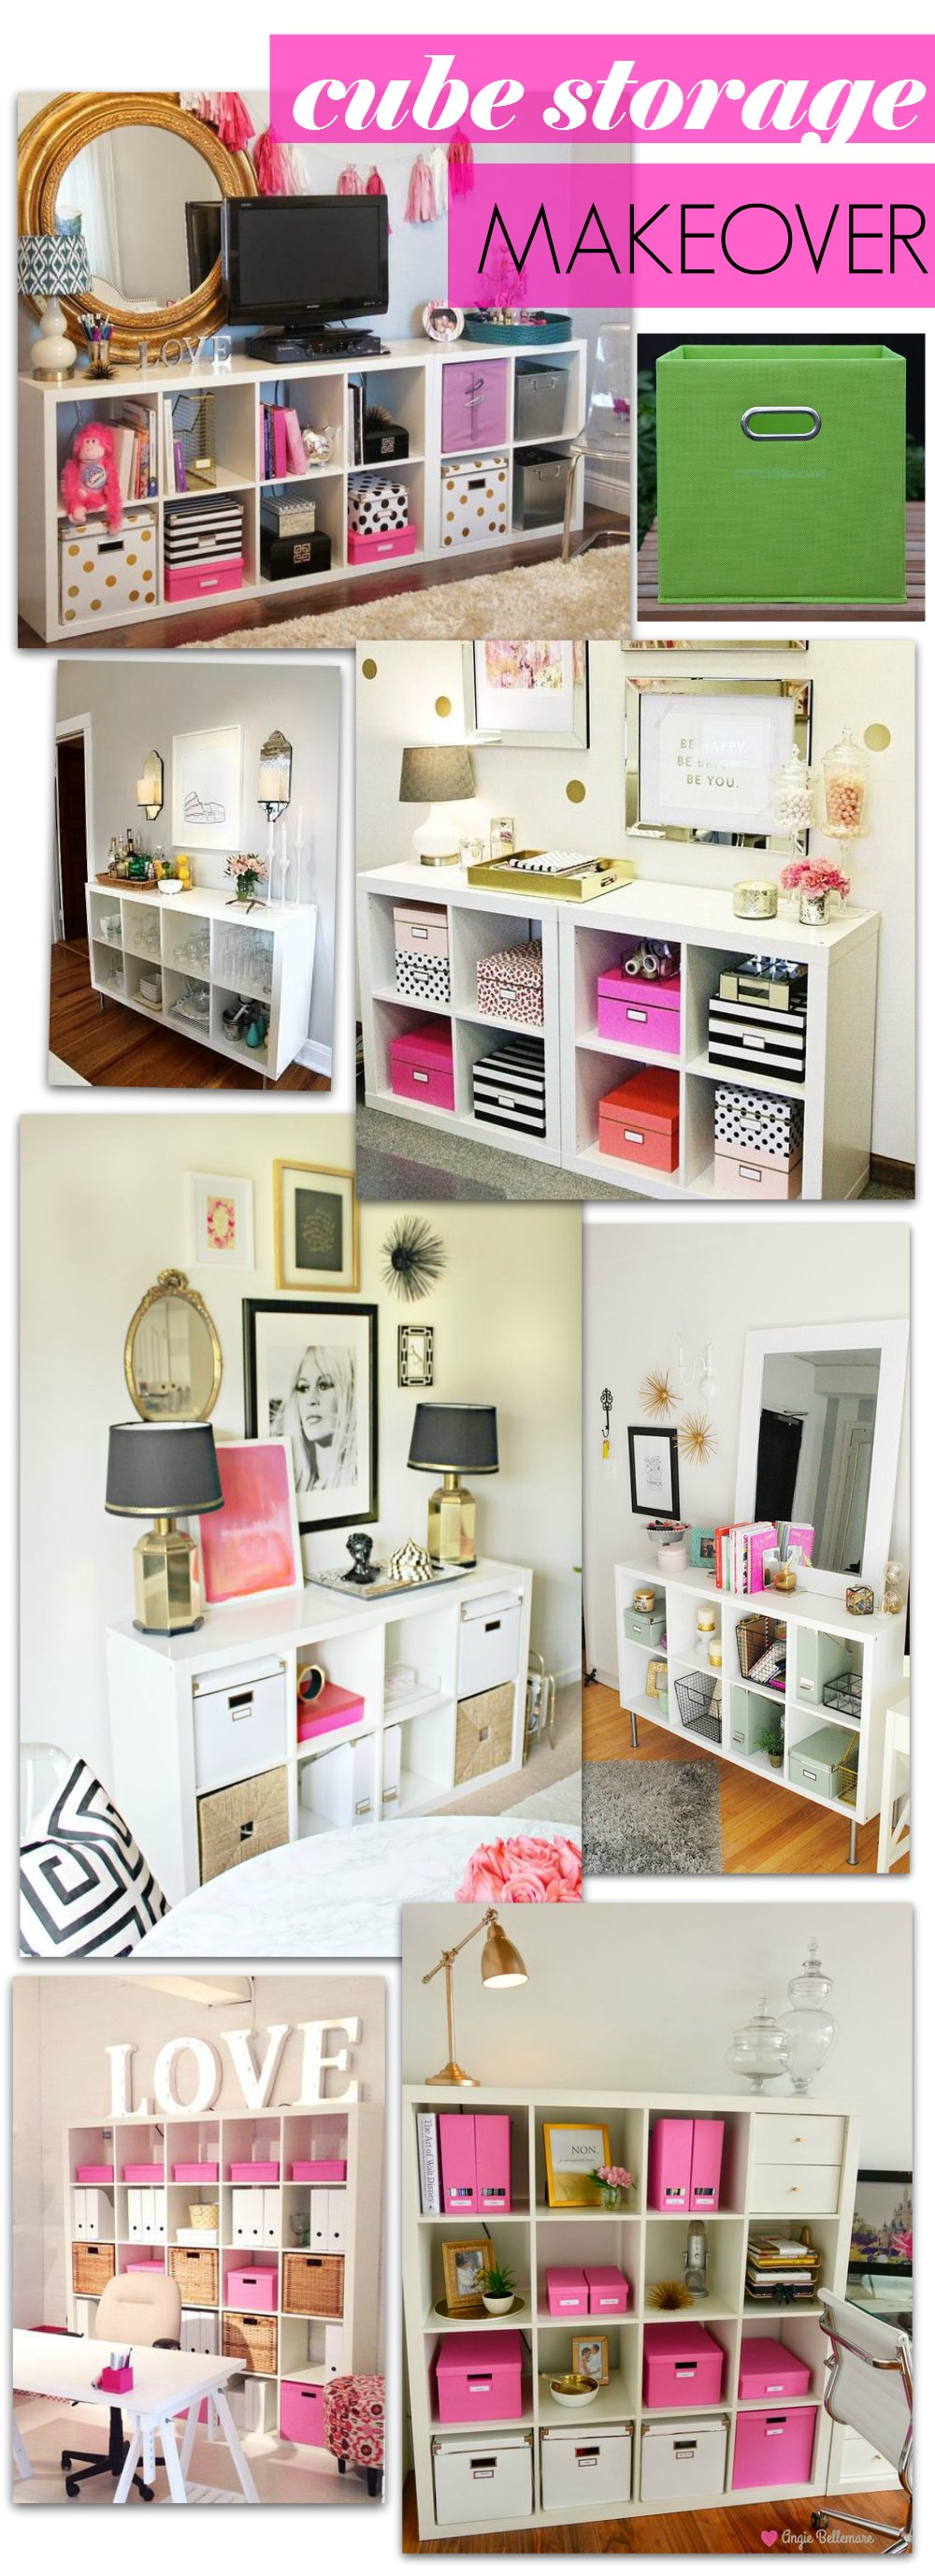 Best Diy Cube Storage Makeover Inspo Project Living Room With Pictures